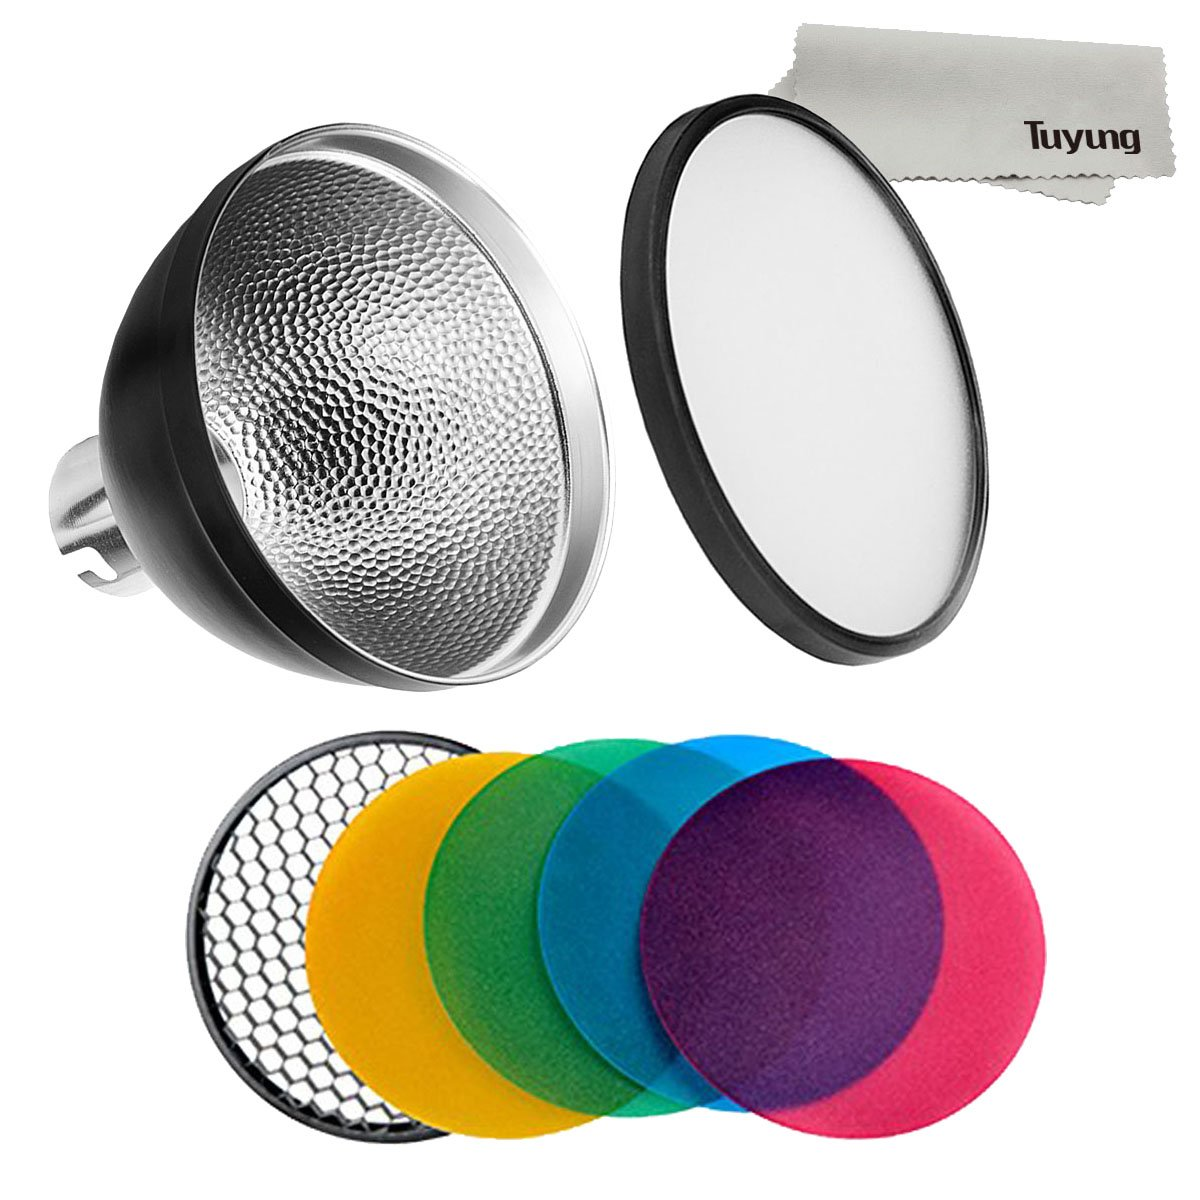 Godox AD-S2 Standard Reflector with Soft Diffuser and ad-s11 Witstro Flash Speedlite Accessories for Godox AD200 AD200PRO AD360 AD360II Flashes by Godox